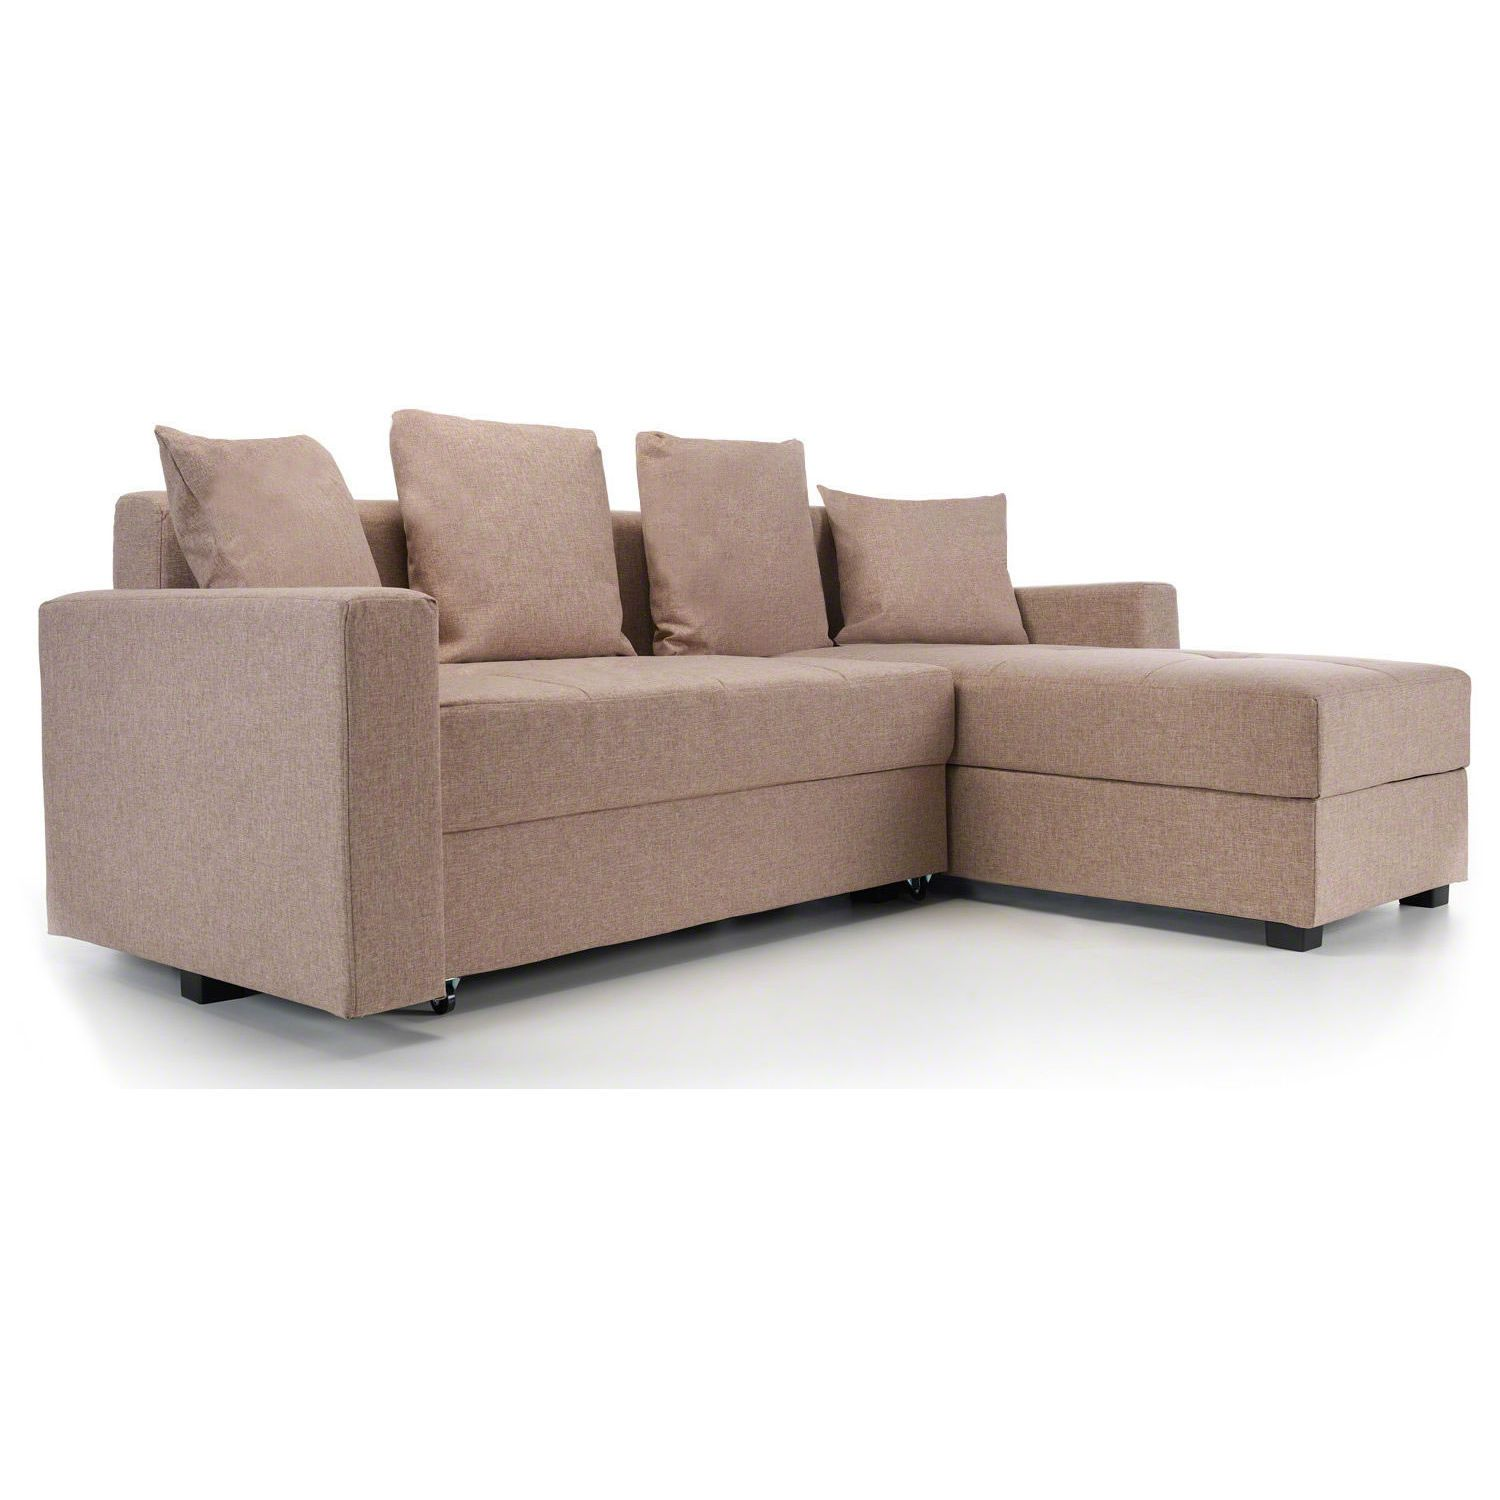 Best 9 L Shaped Sofa Bed With Storage Ideas Sofa Bed